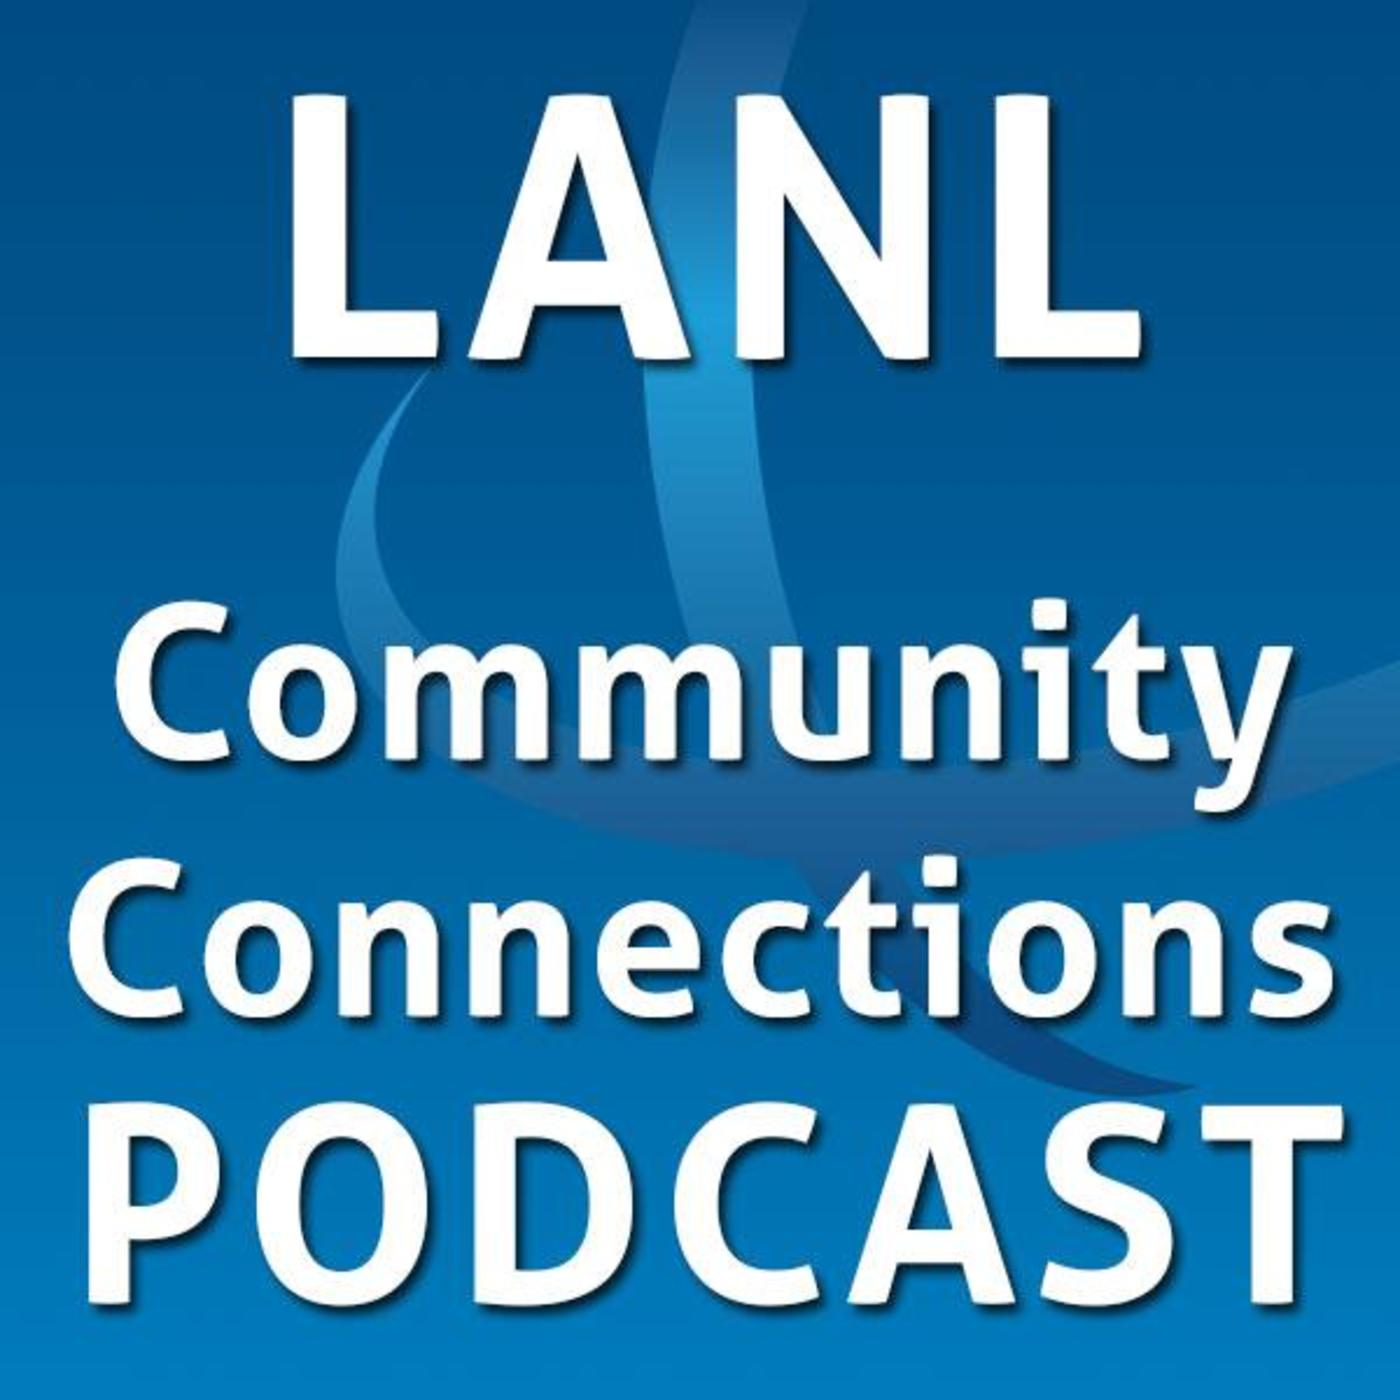 LANL Community Connections Podcast